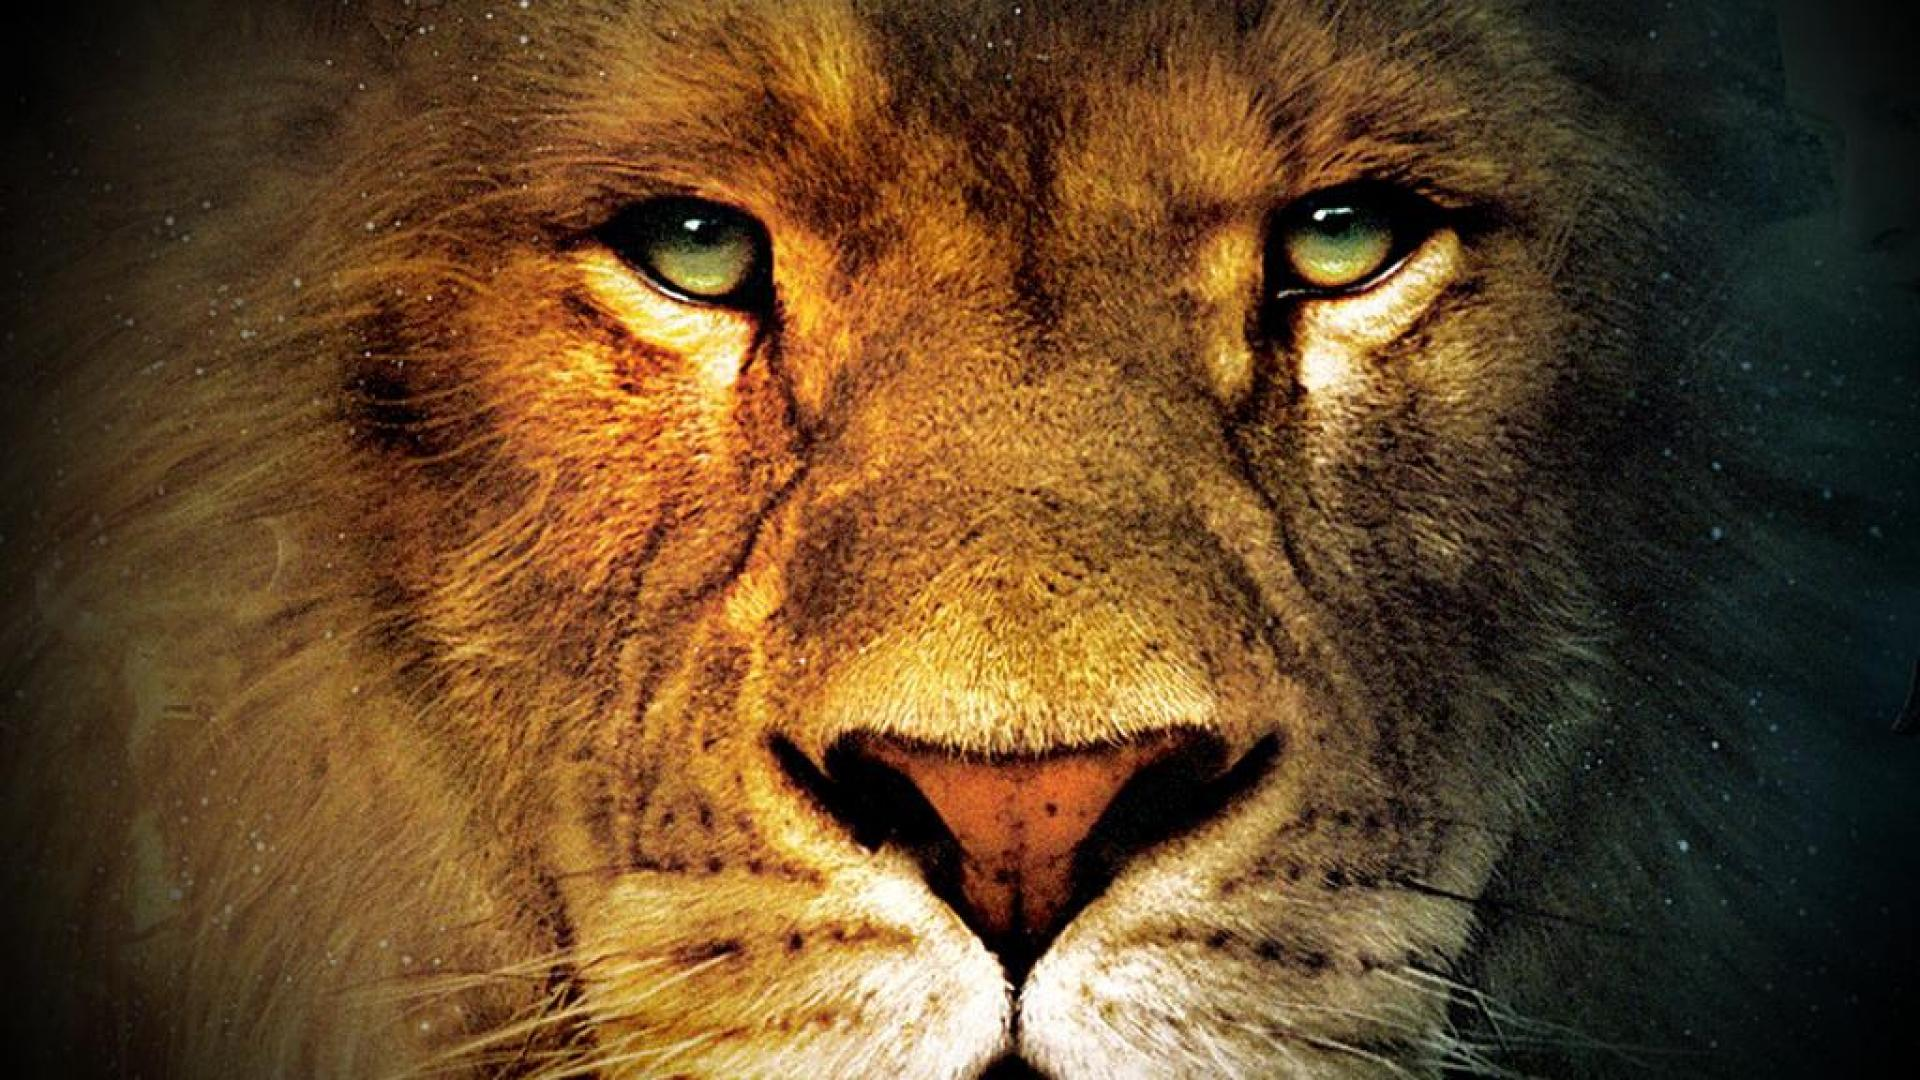 Lion Face Wallpaper 1920x1080